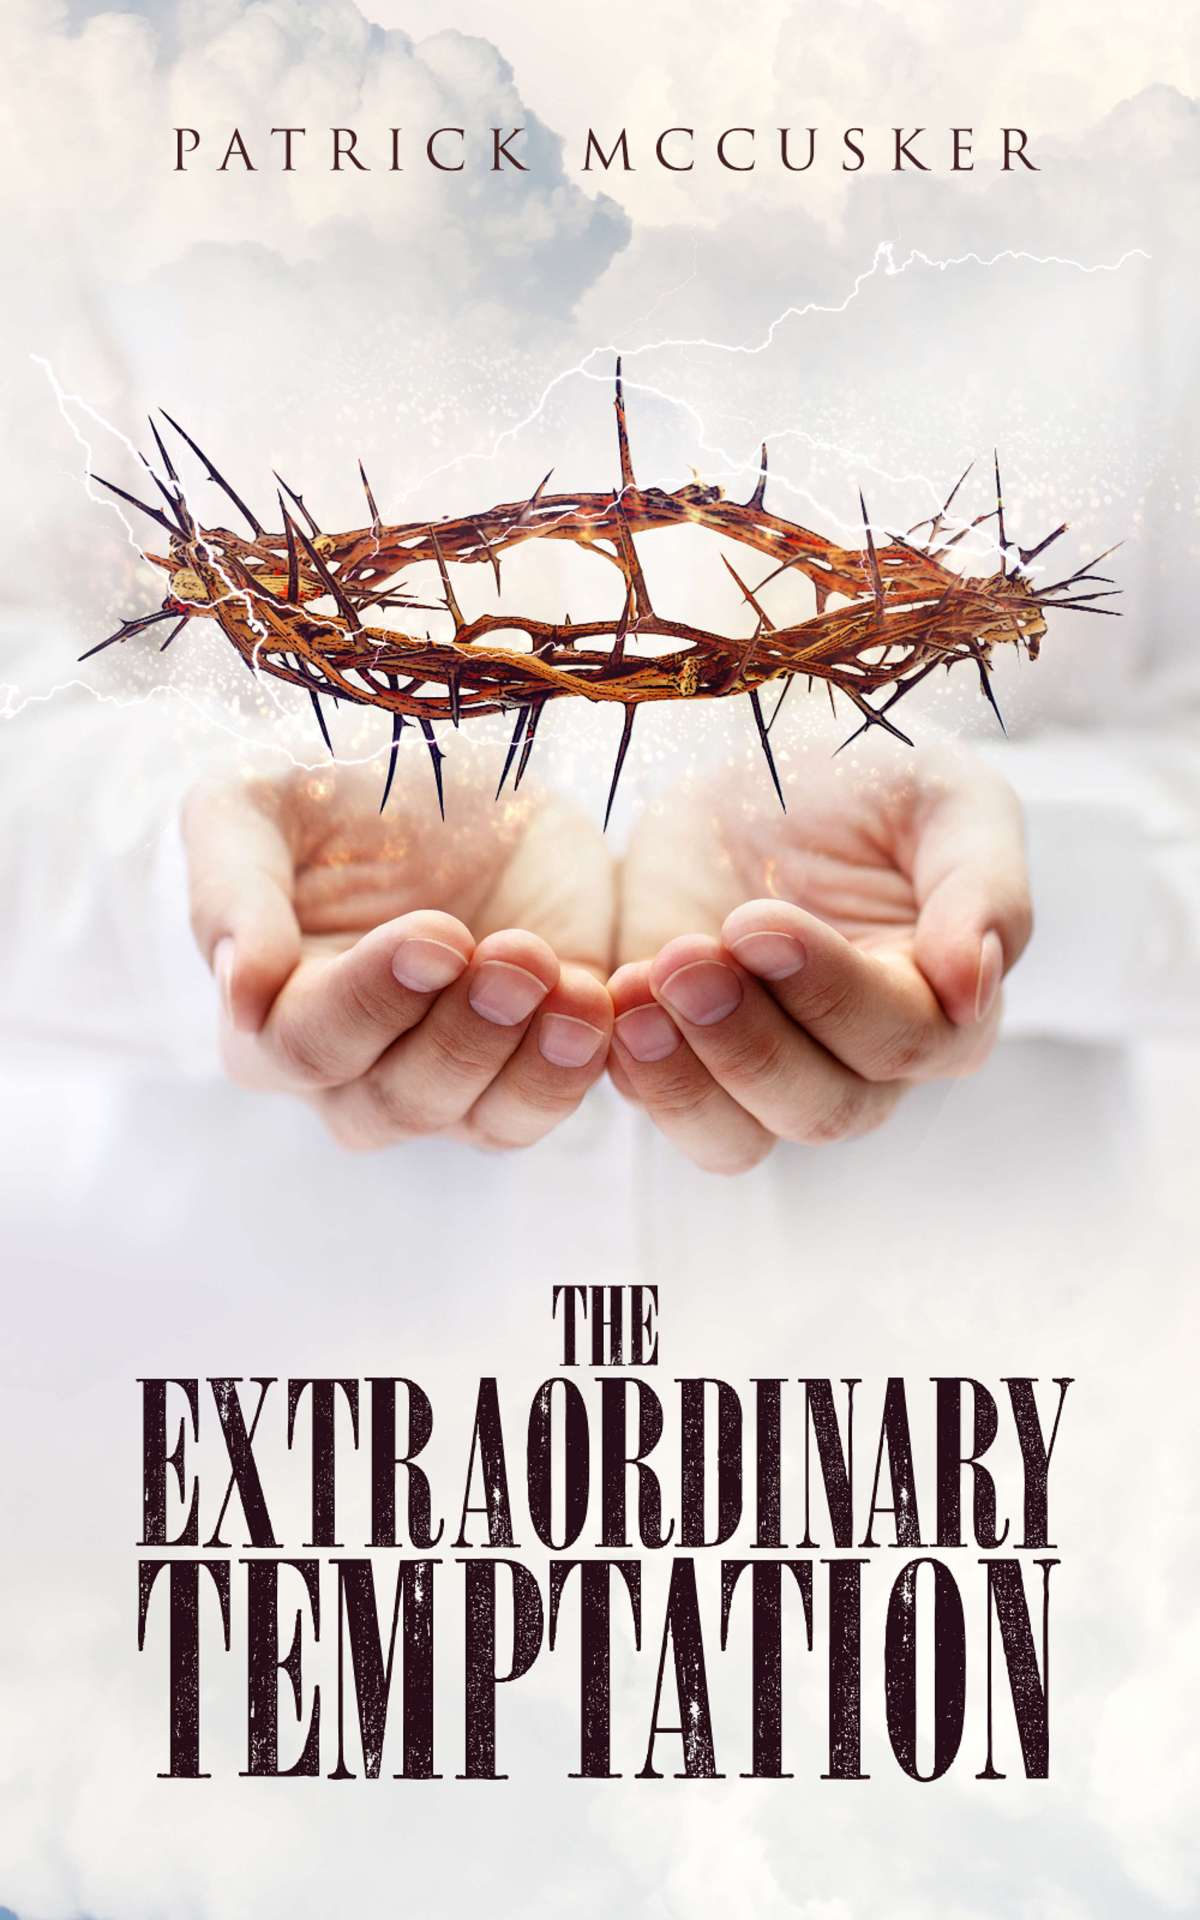 The Extraordinary Temptation, by Patrick McCusker: A Review